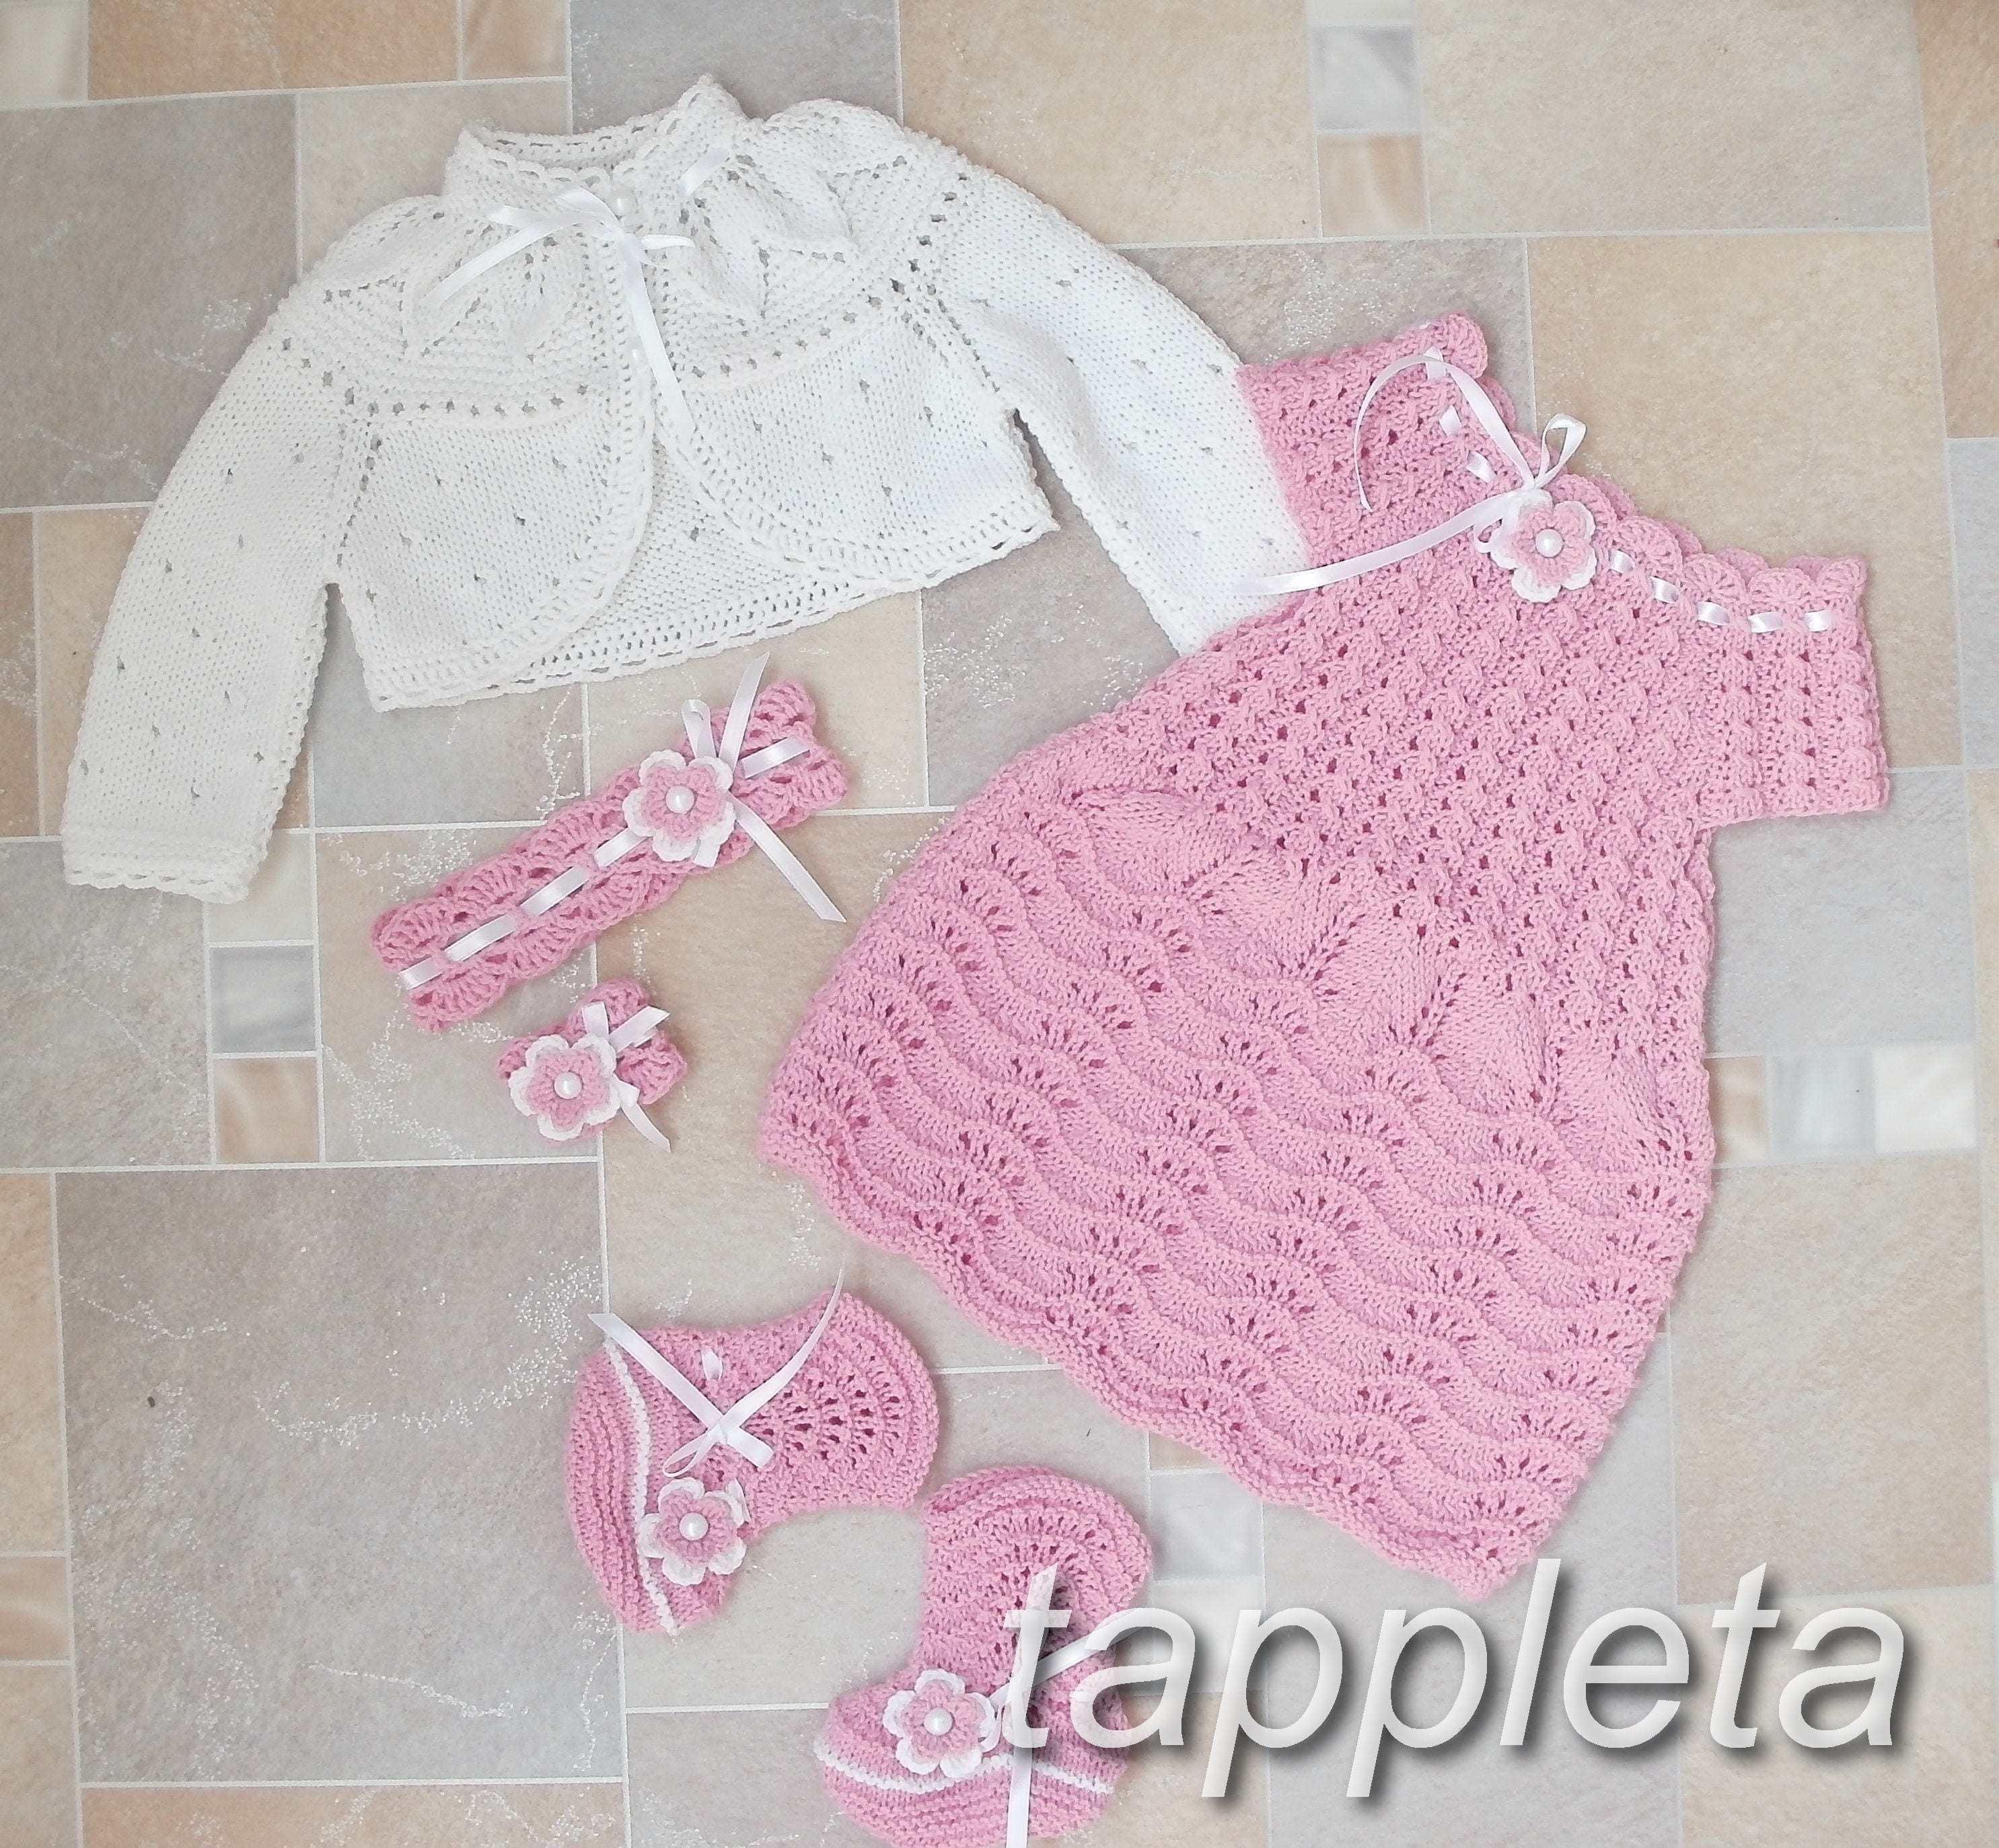 Free Shipping Baptism Outfit For Girl Baby Baptism Dress Etsy